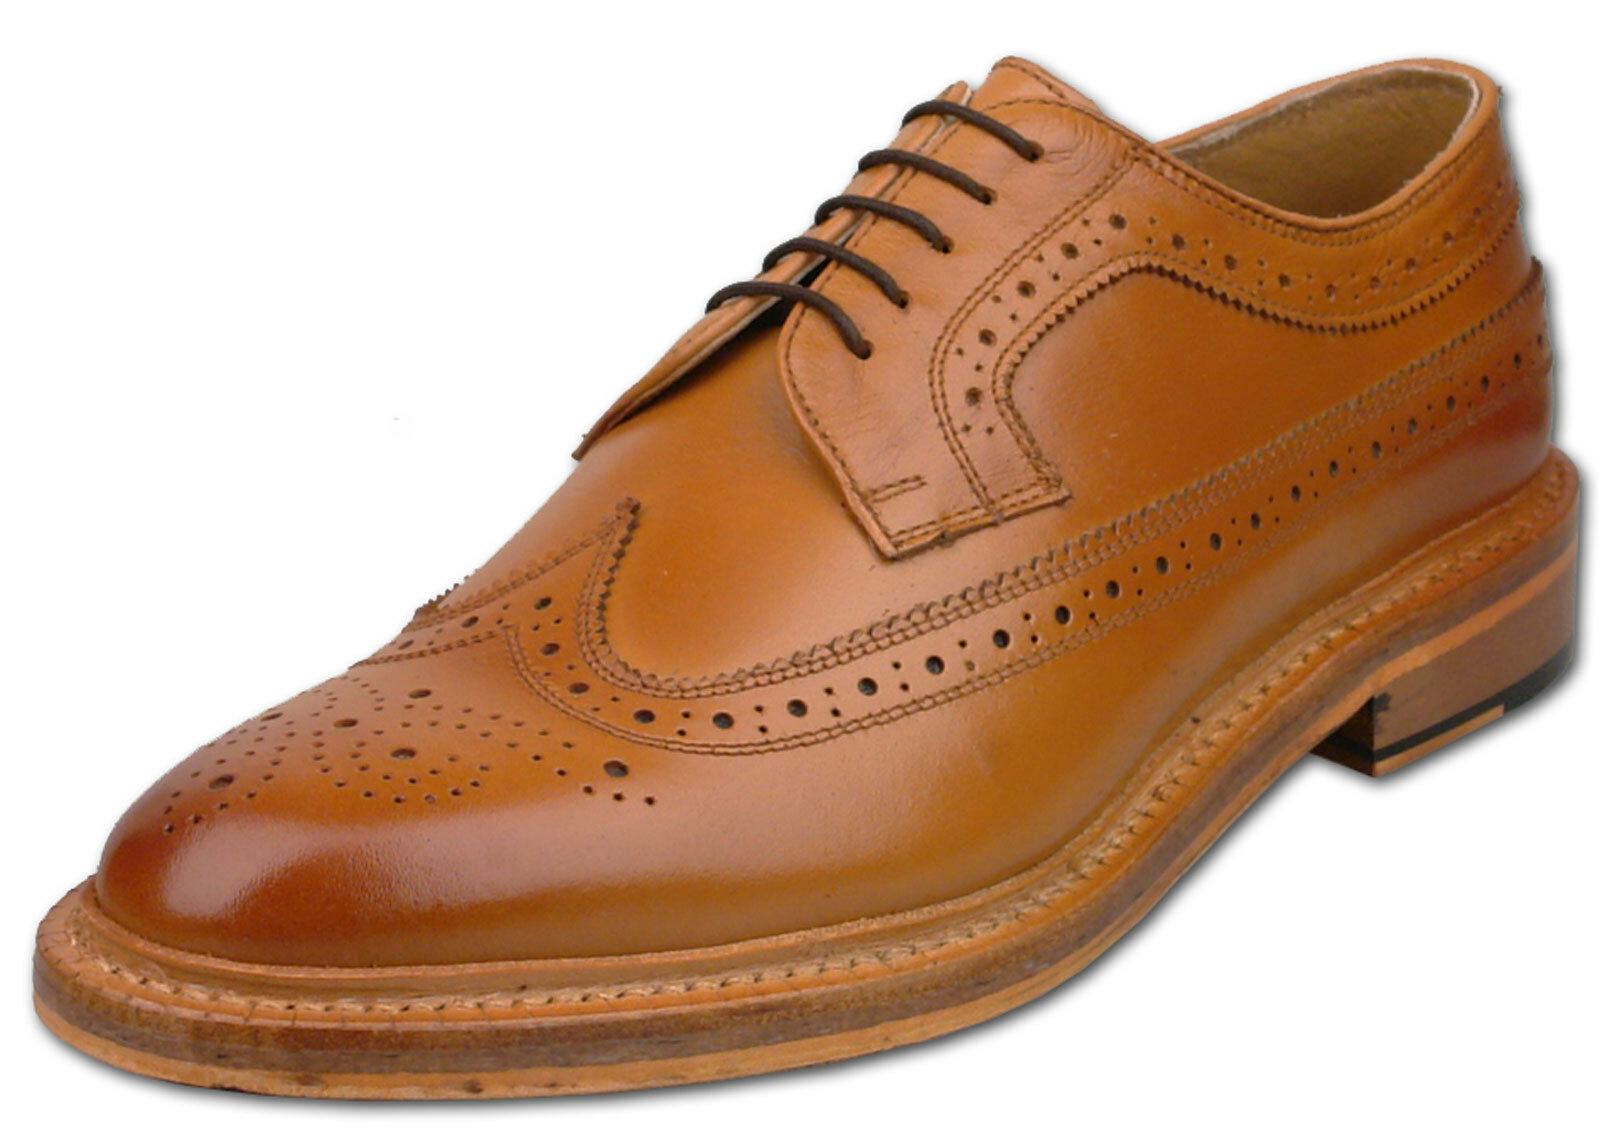 Mens New Tan Full Leather Lace Up American 7 Brogue Shoes Size 6 7 American 8 9 10 11 12 e8935c